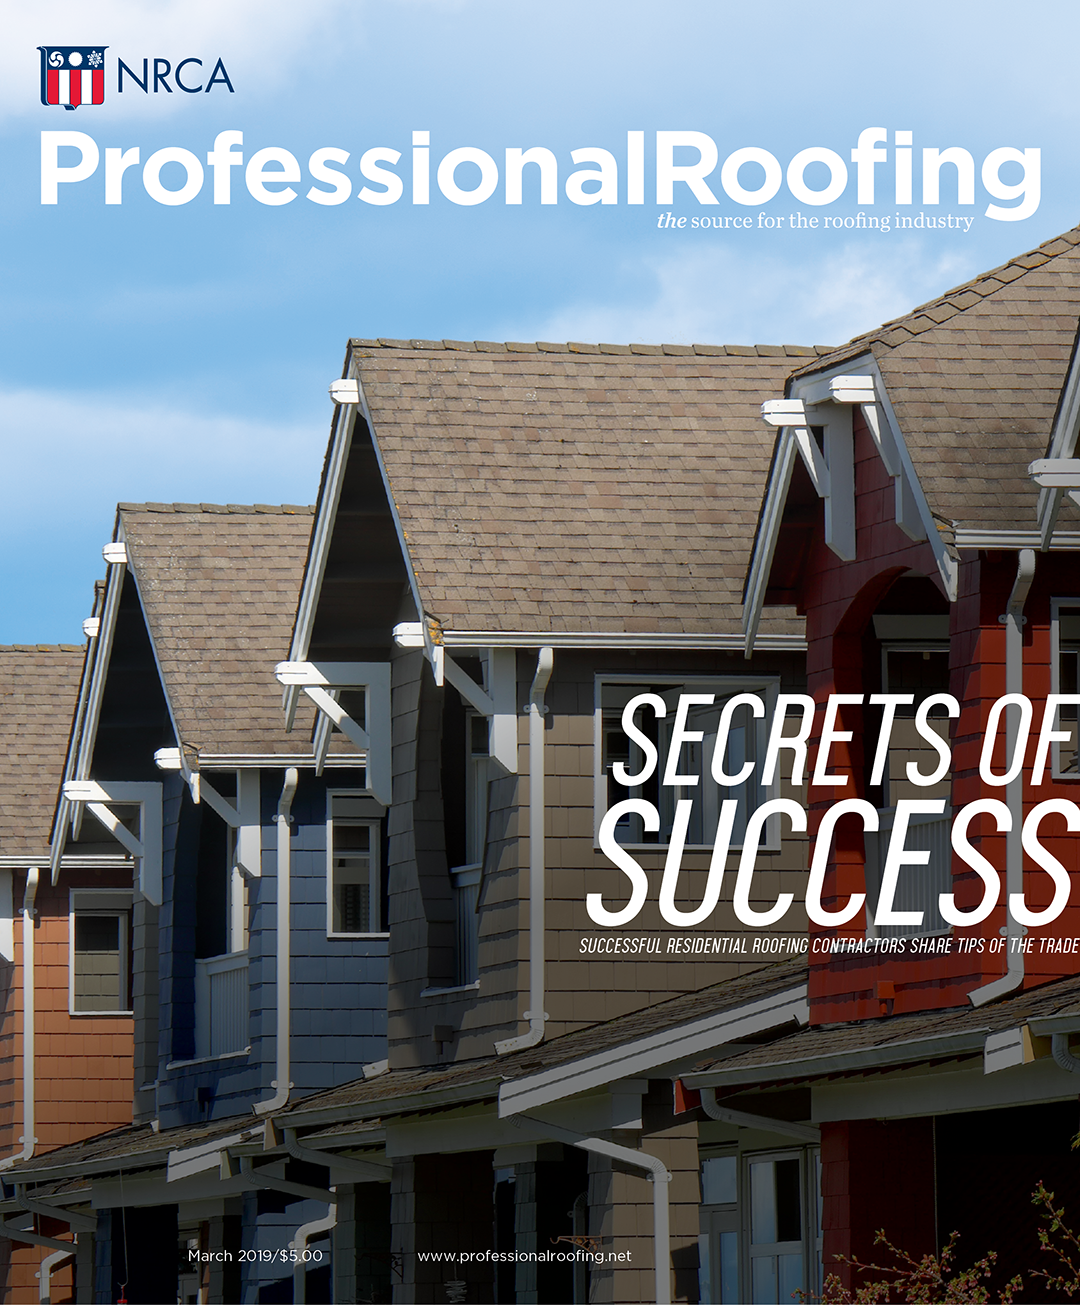 Professional Roofing Magazine 3/1/2019